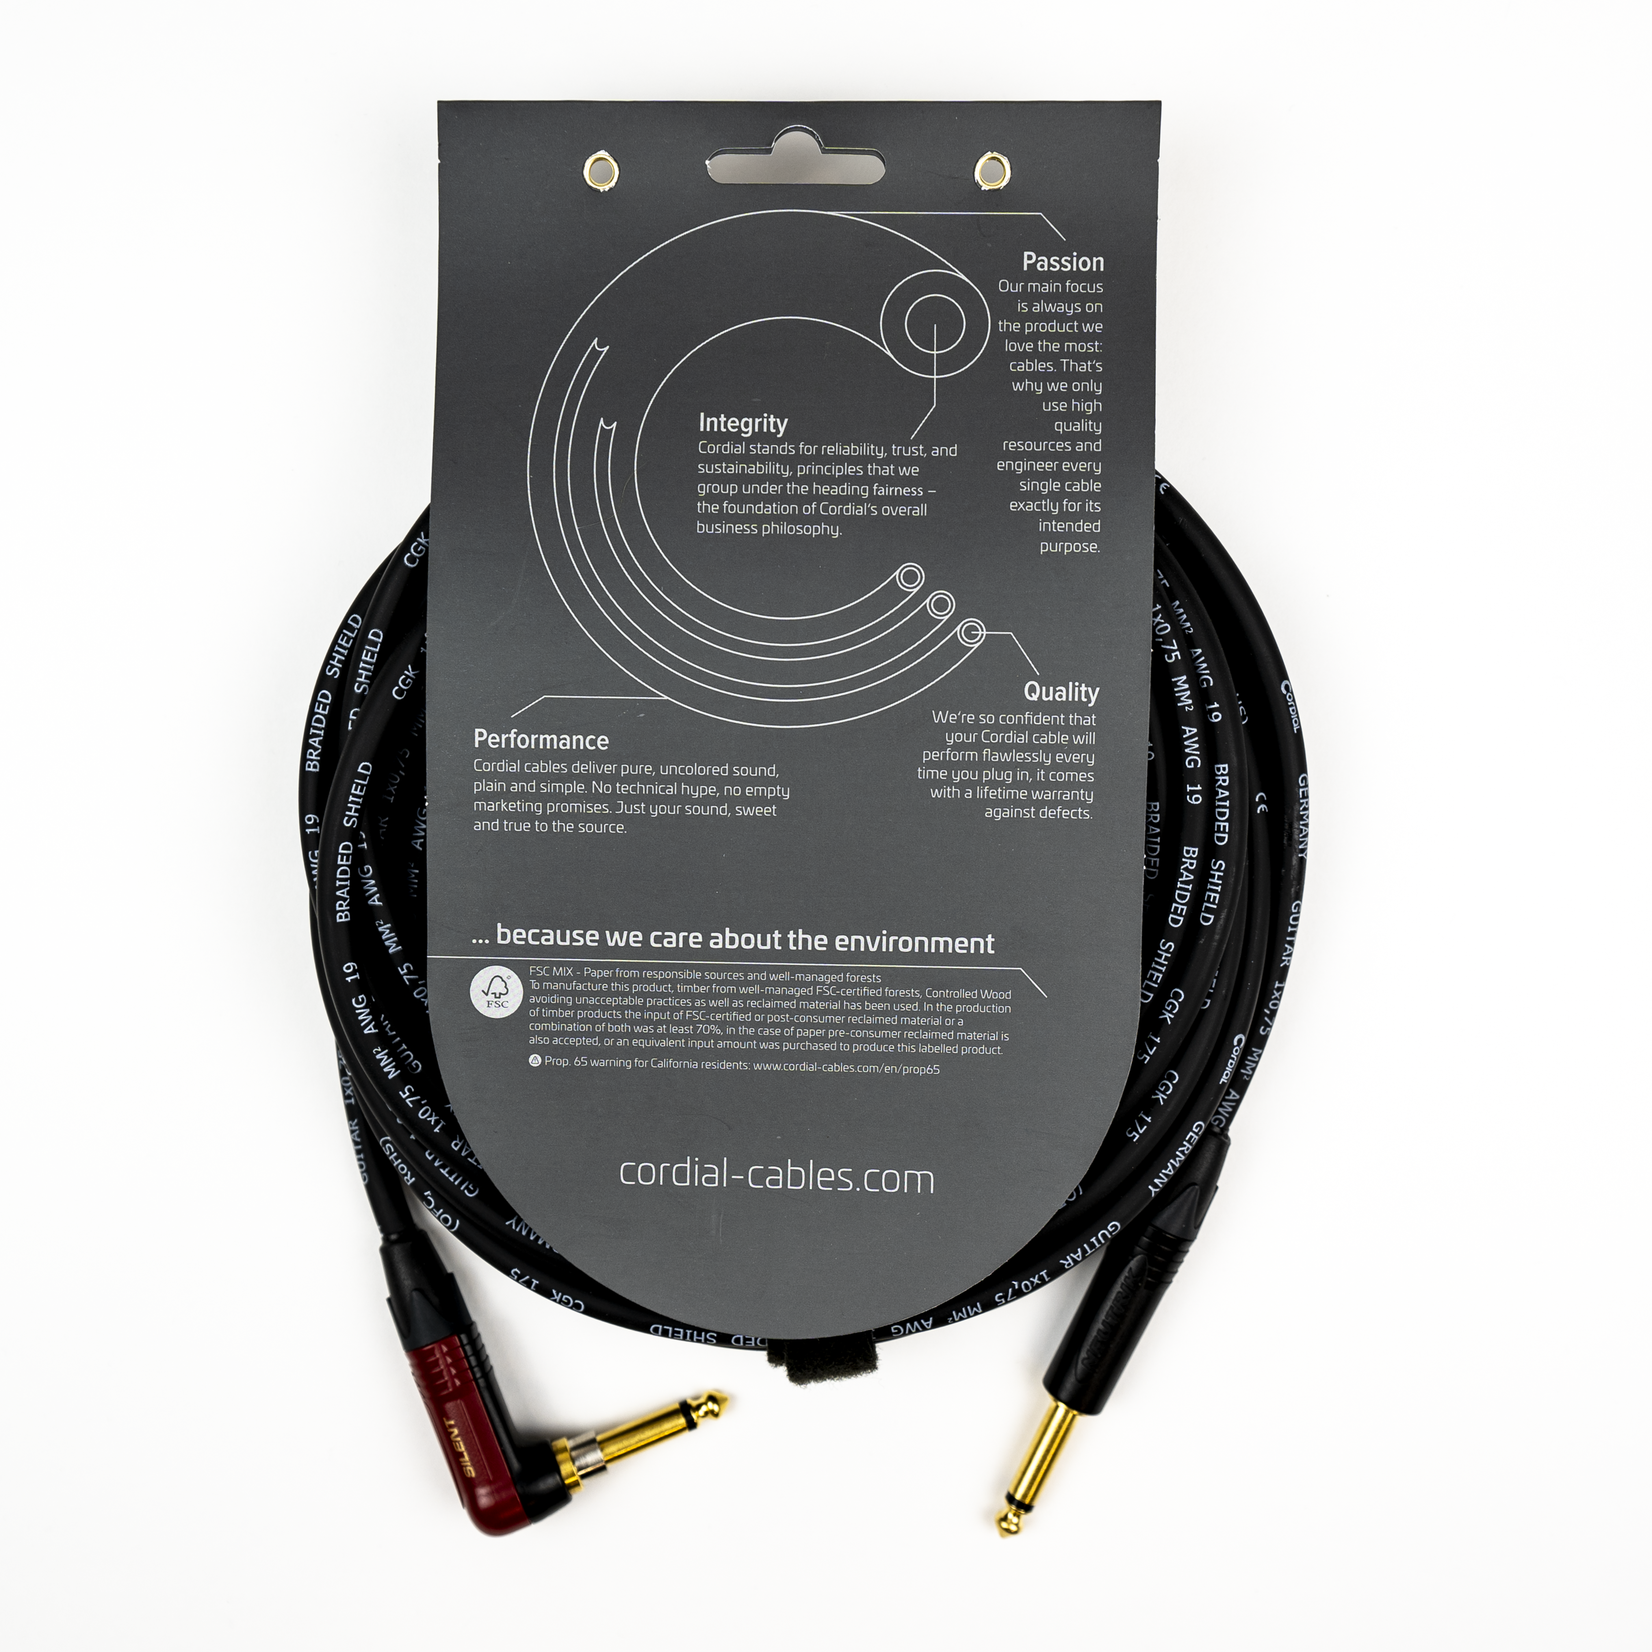 Cordial Cables Cordial 6m /~20ft Premium High-Copper German Inst. Cable, 1/4''-RA Neutrik Silent, CSI 6 RP-SILENT